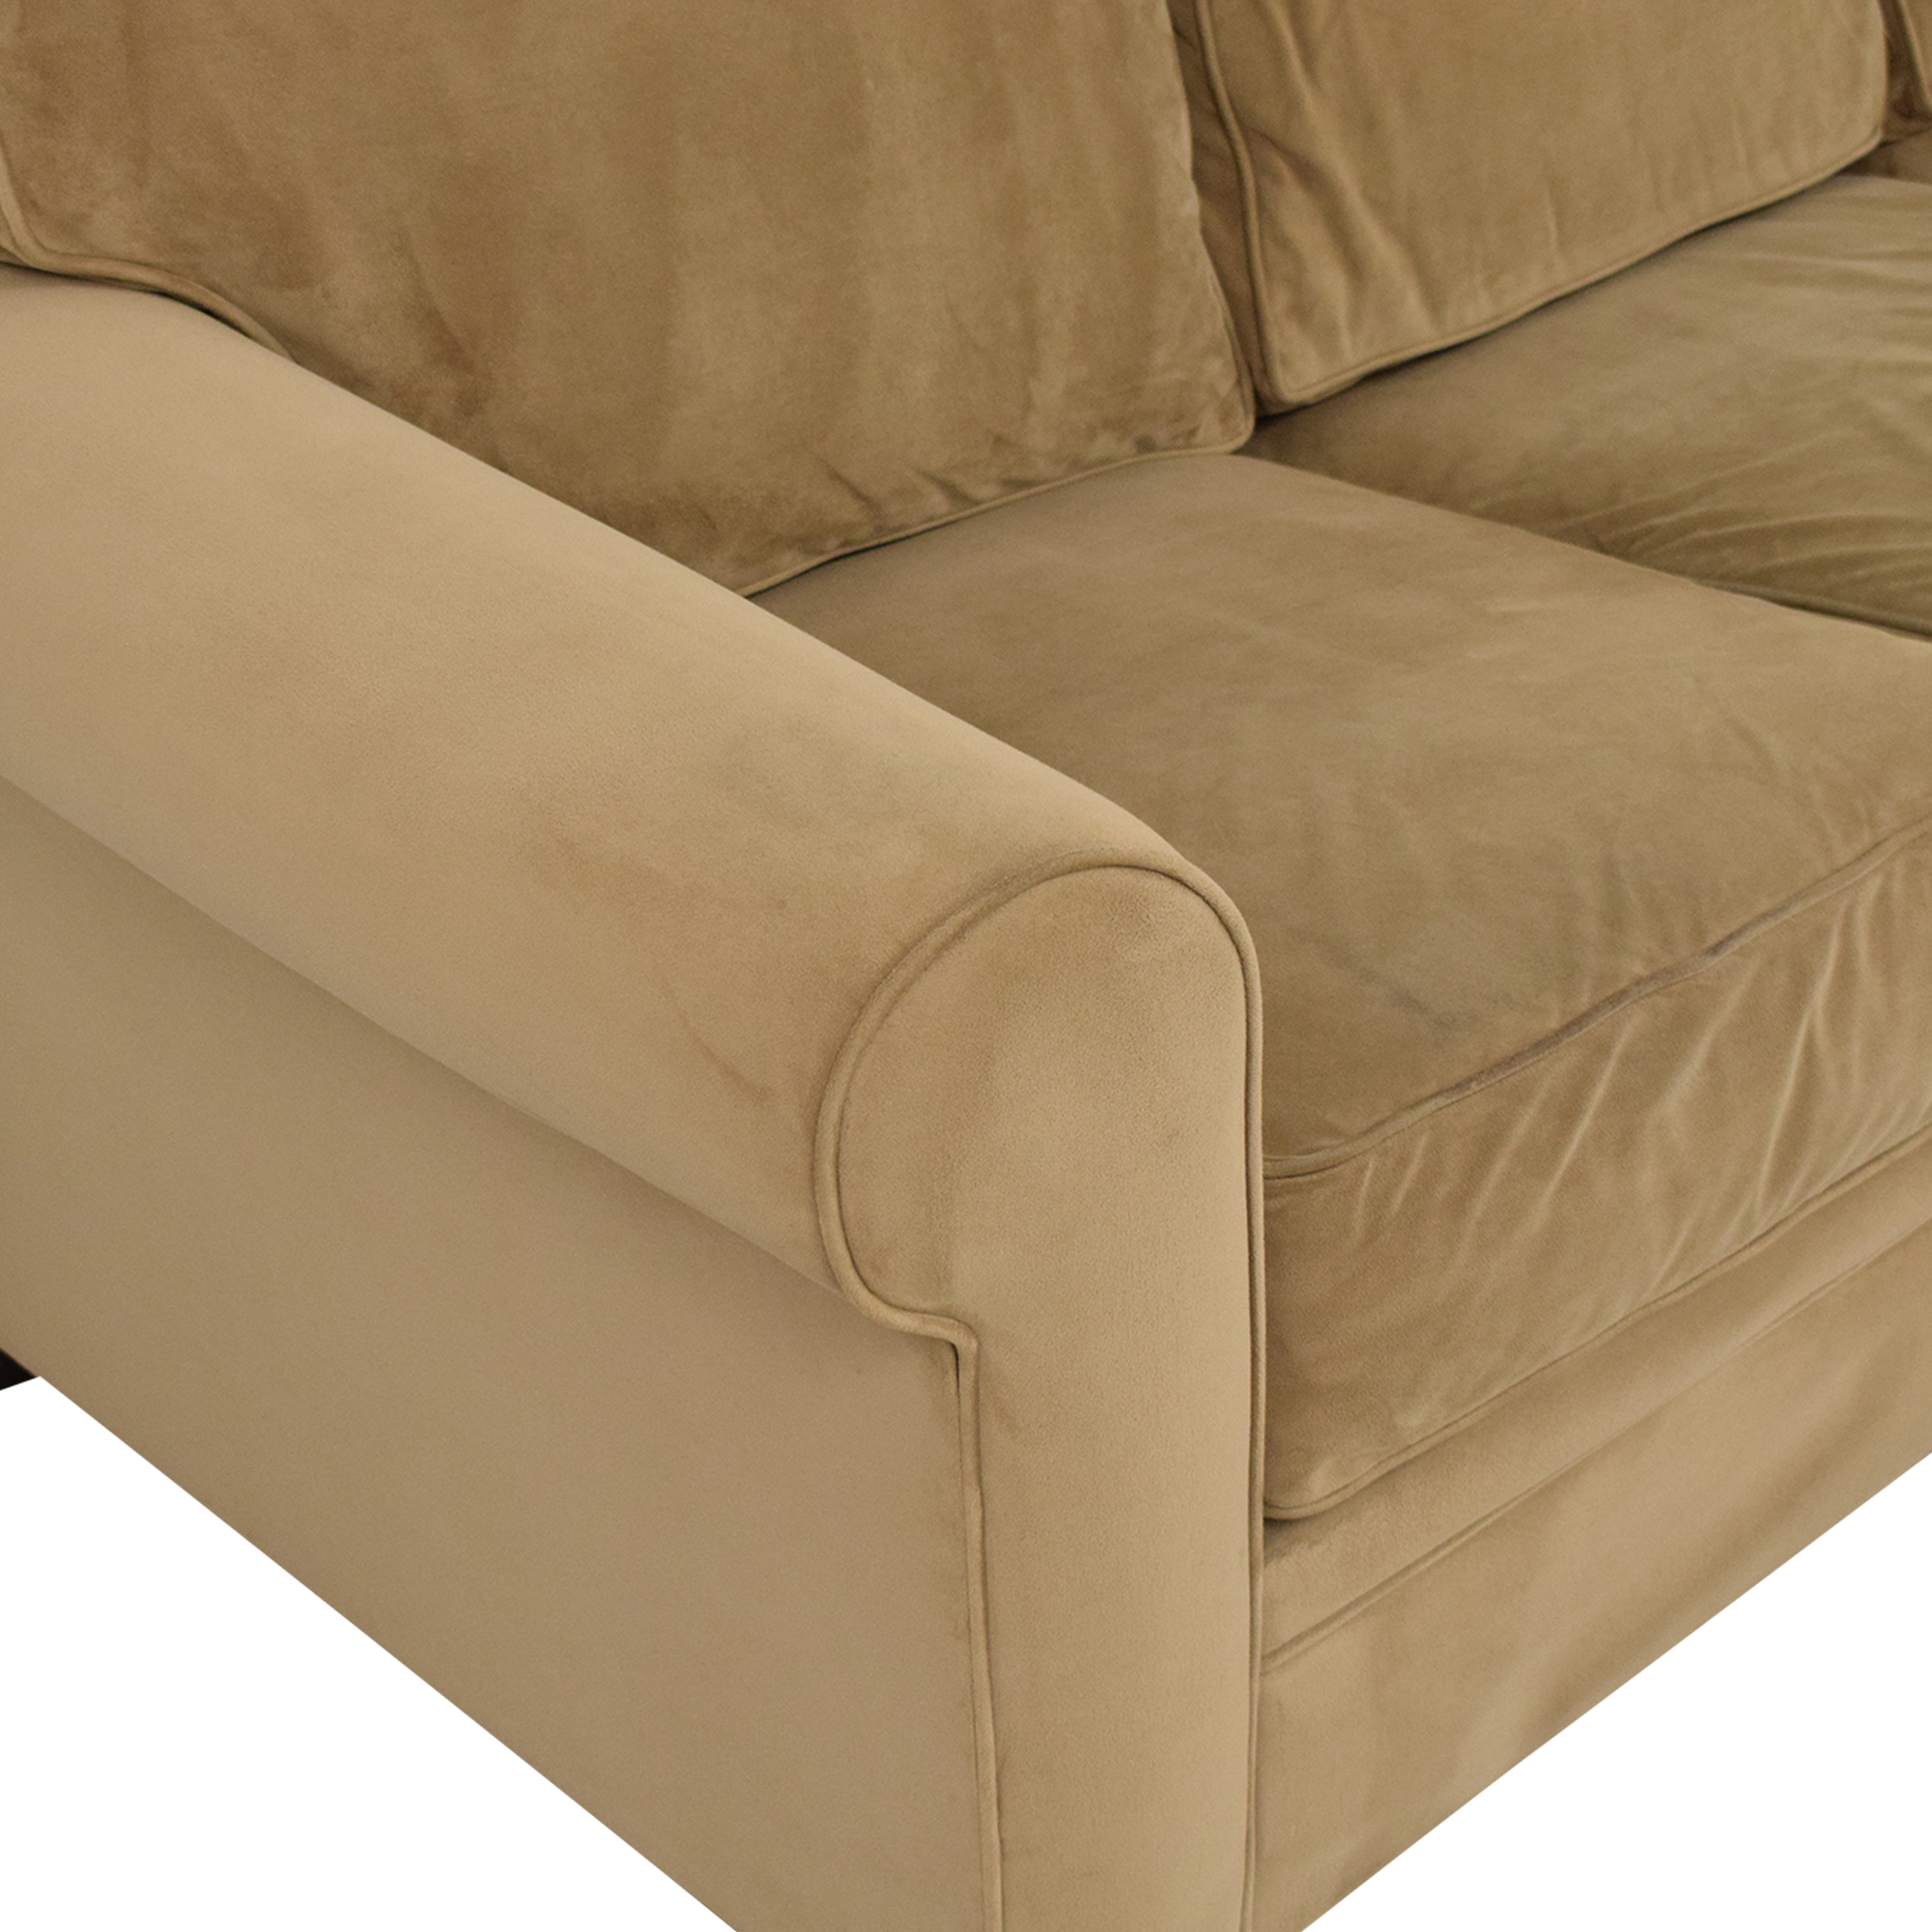 Macy's Macy's Tan Sofa Bed for sale